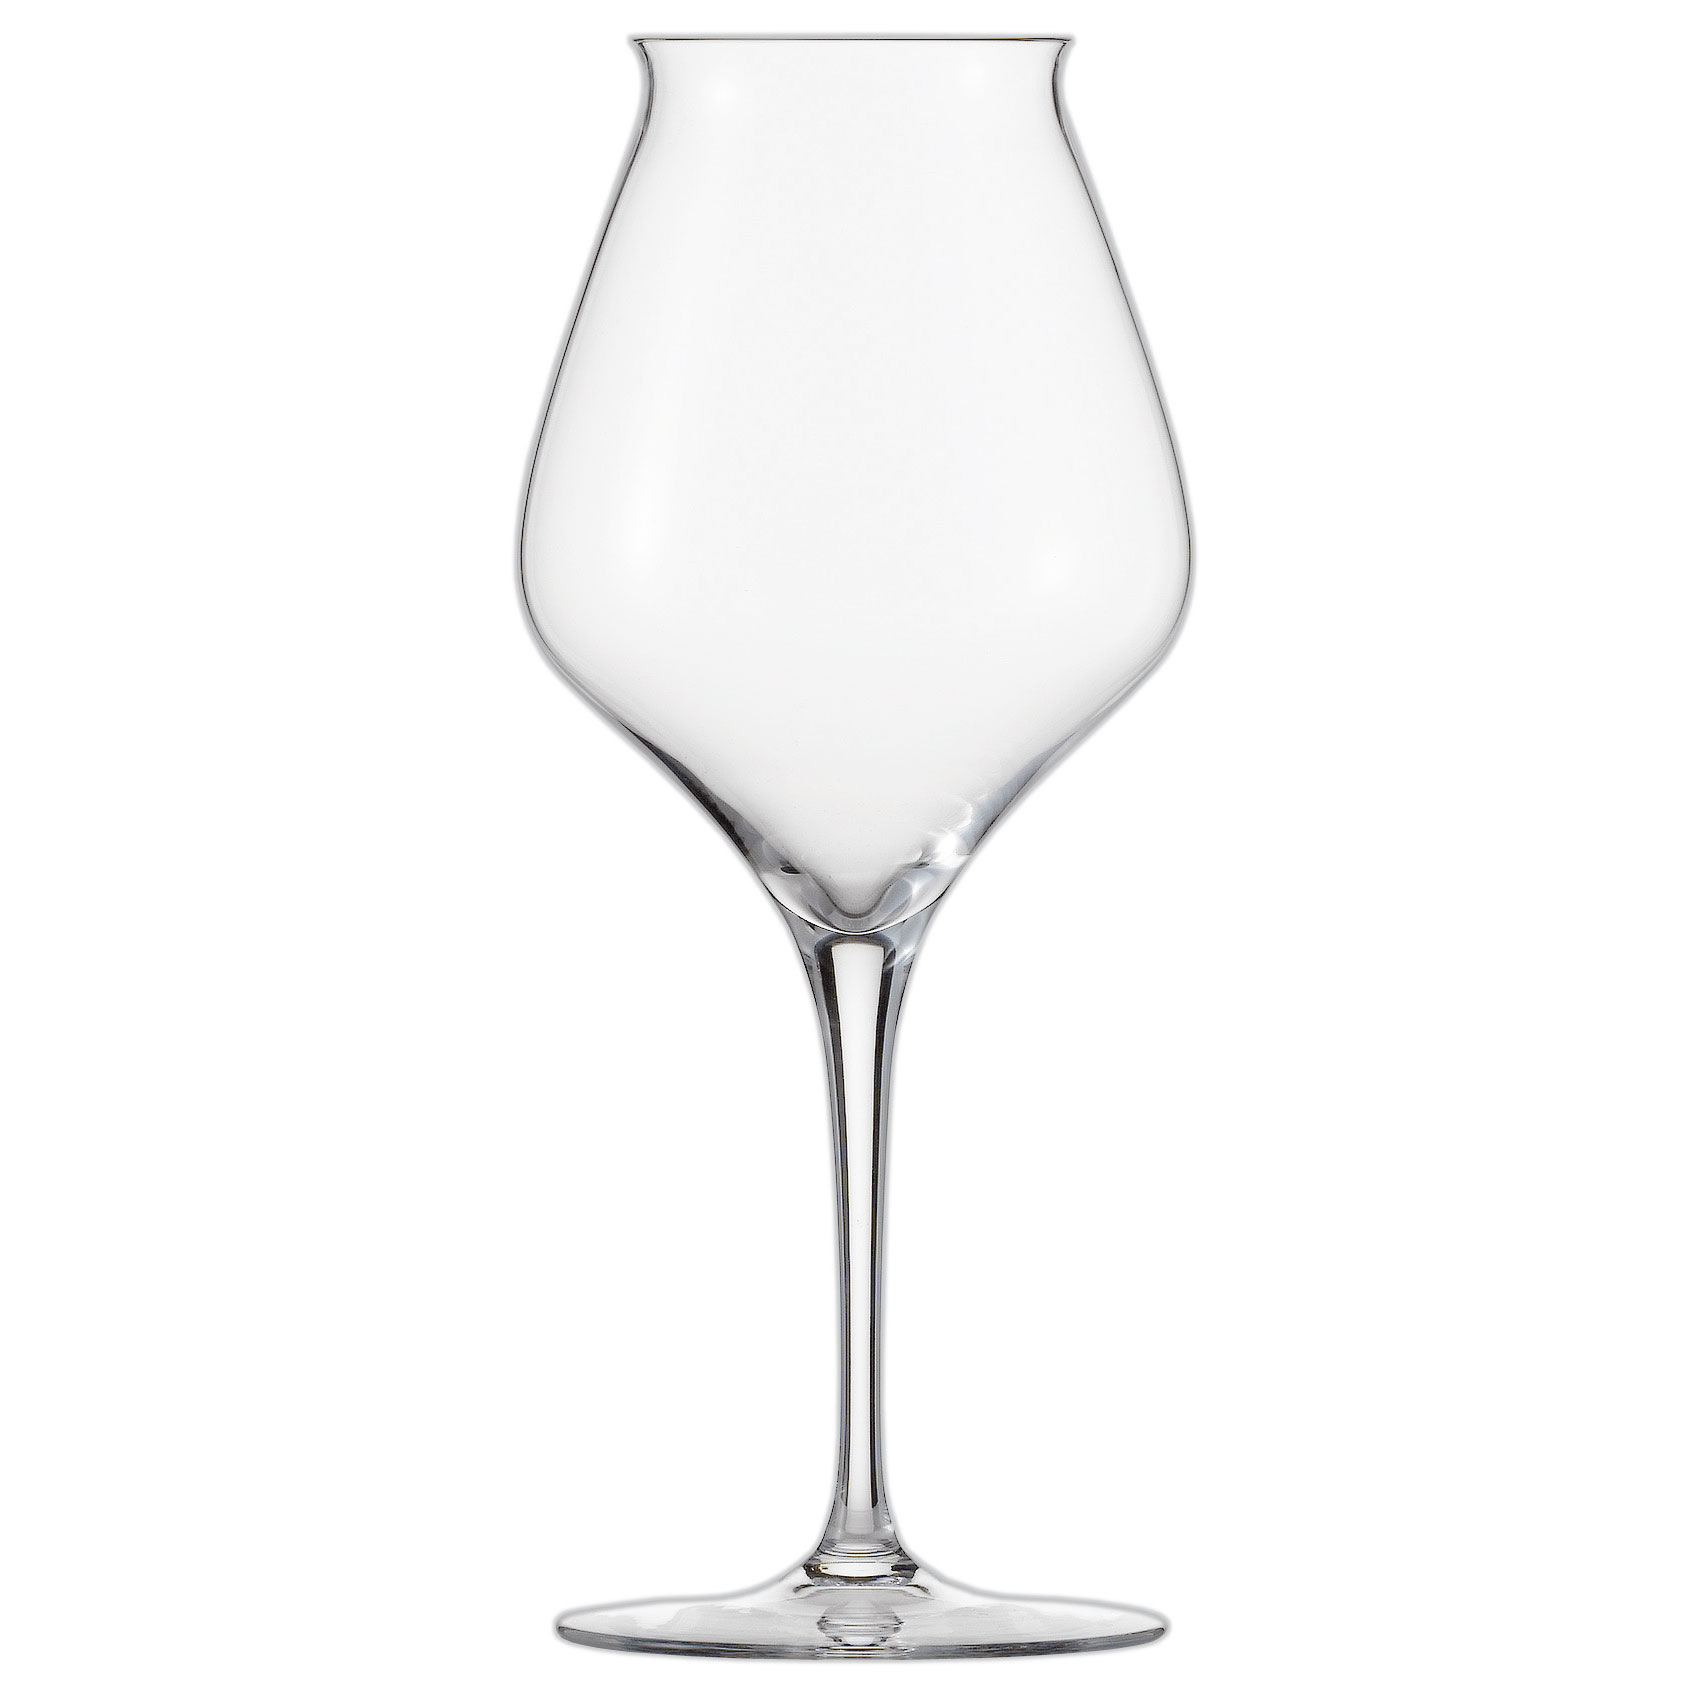 Weinkelch Glas Zwiesel 1872 The First White Wine Glass Gewürztraminer 132 2pc Set Wine Glass Wine Goblet Glass 411 Ml 112922 At About Tea De Shop